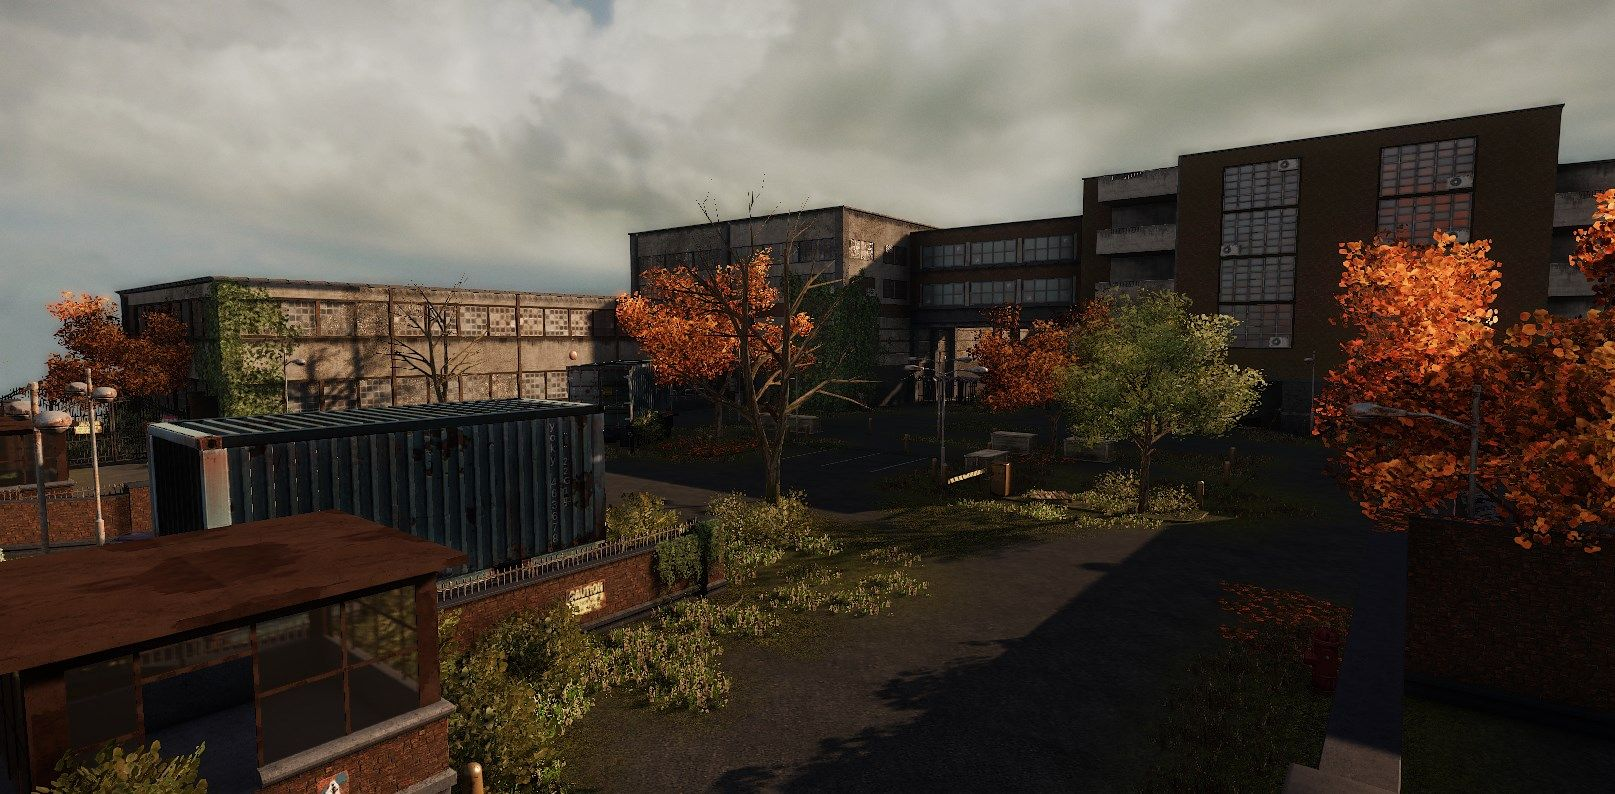 The Last Of Us Environment. - Page 2 - Polycount Forum